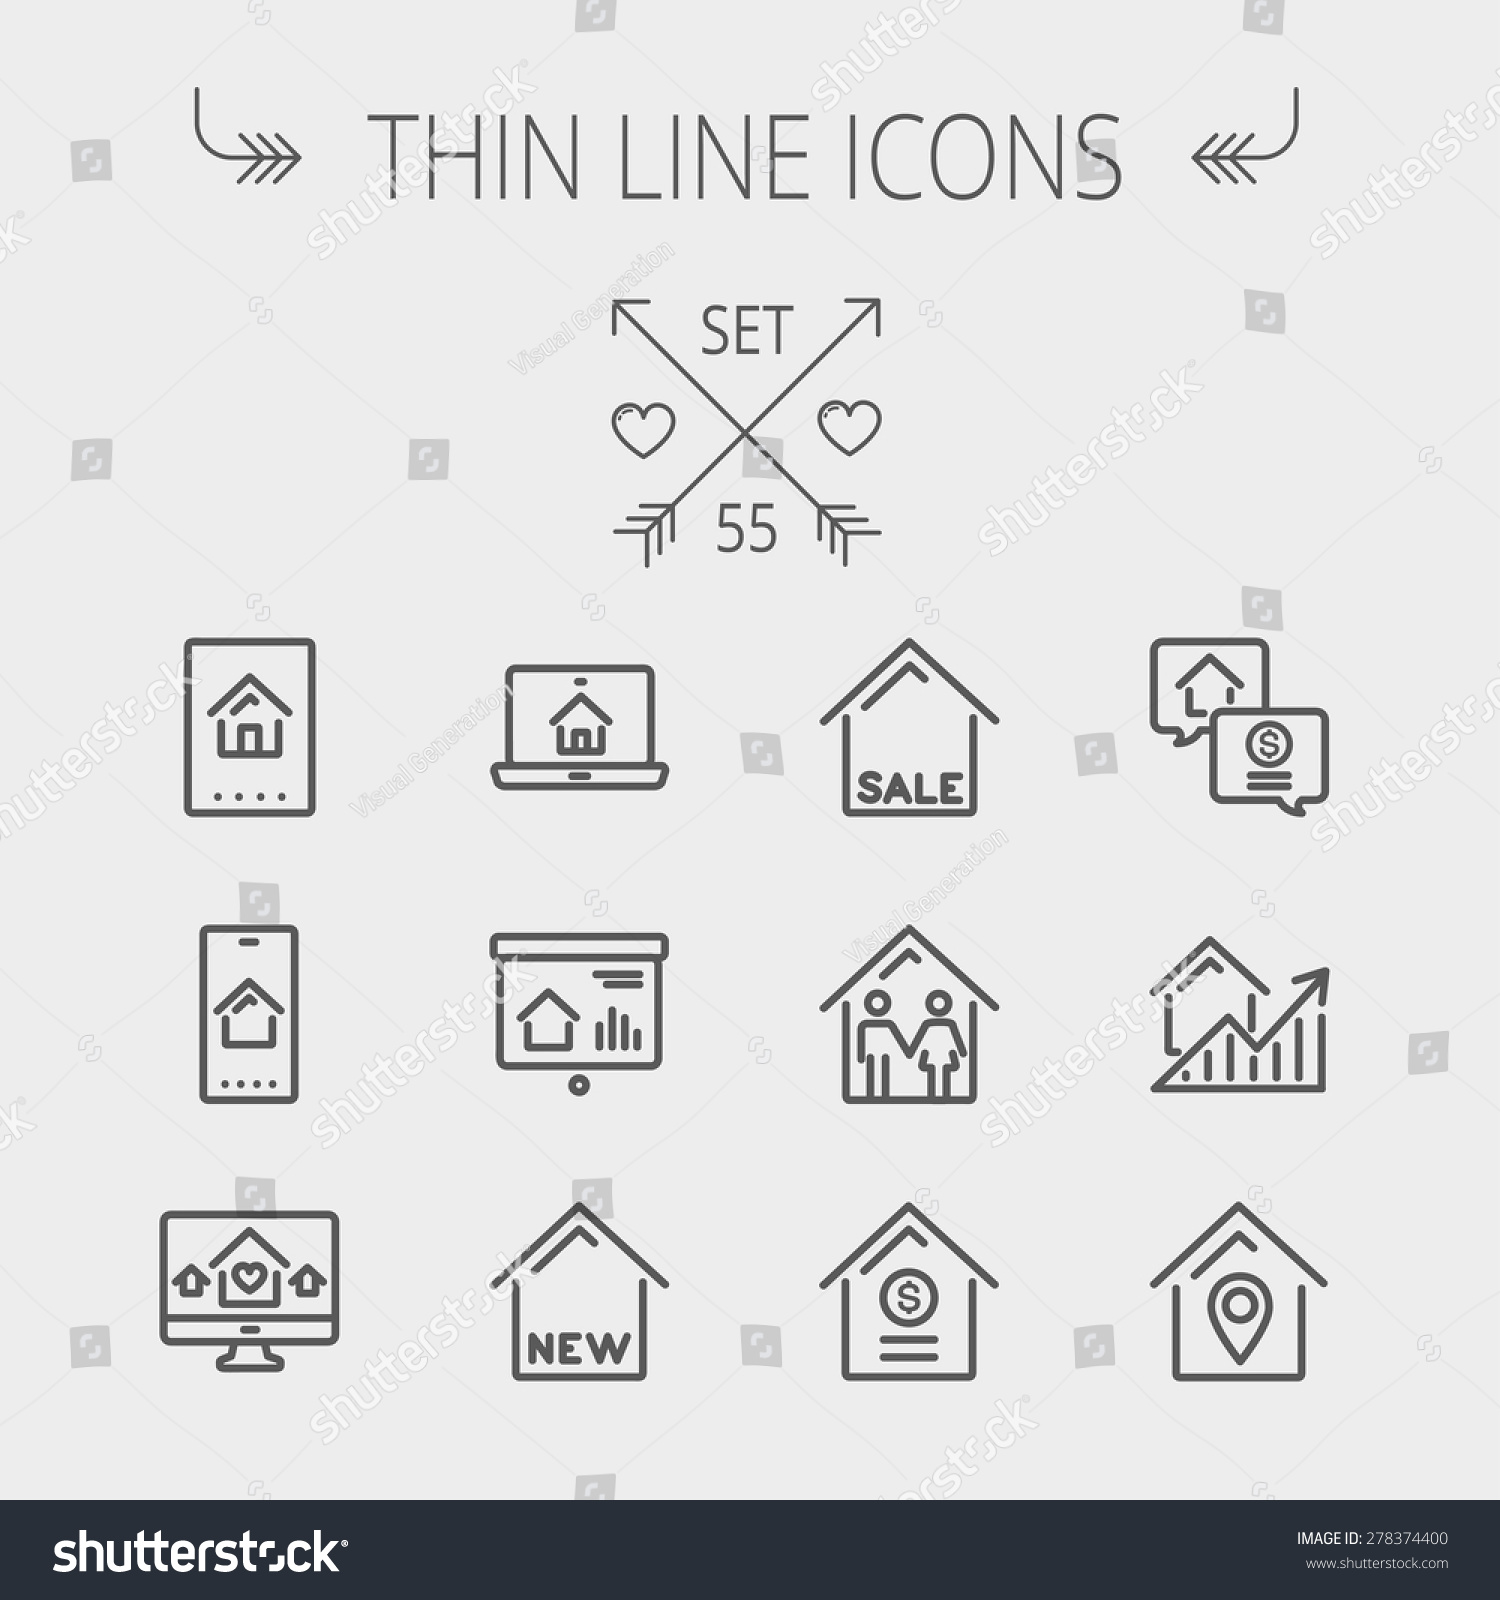 Real Estate Thin Line Icon Set Stock Vector Shutterstock